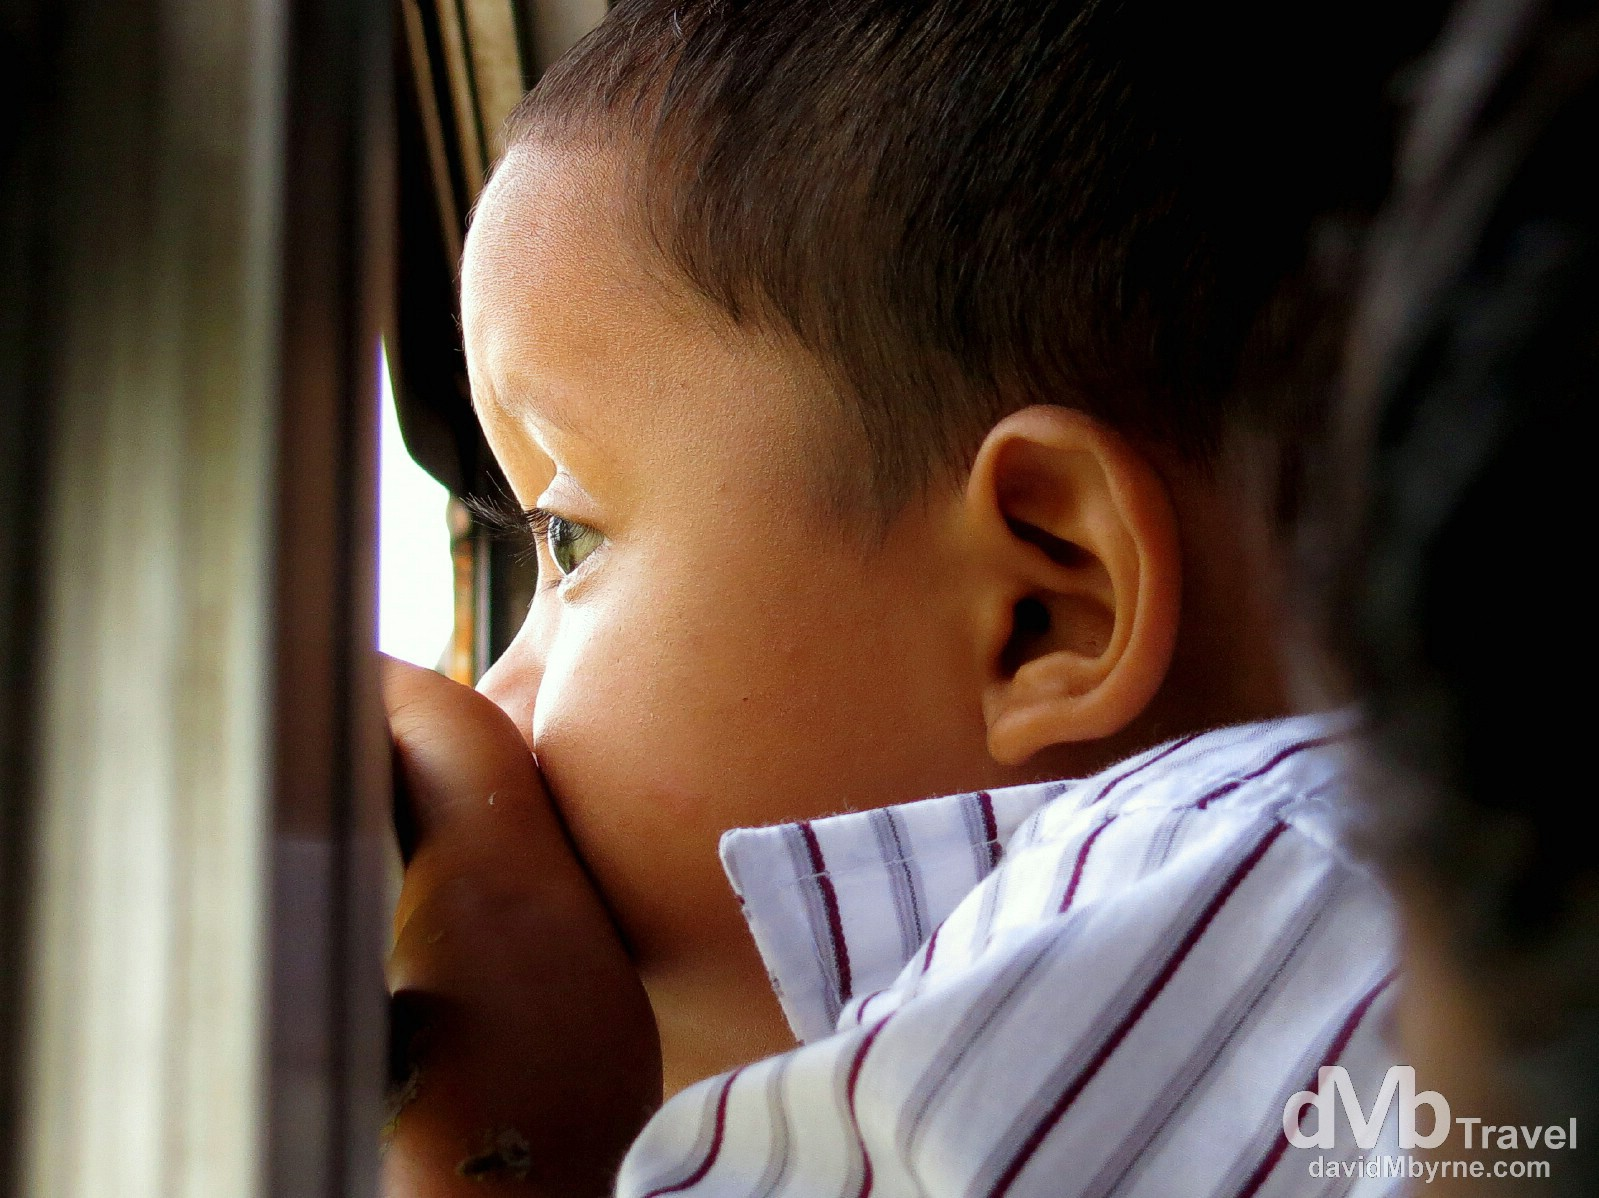 A boy looking out the window on the bus to the ferry terminal in Isla de la Ometepe, Lago de Nicaragua, Nicaragua. June 21st 2013.